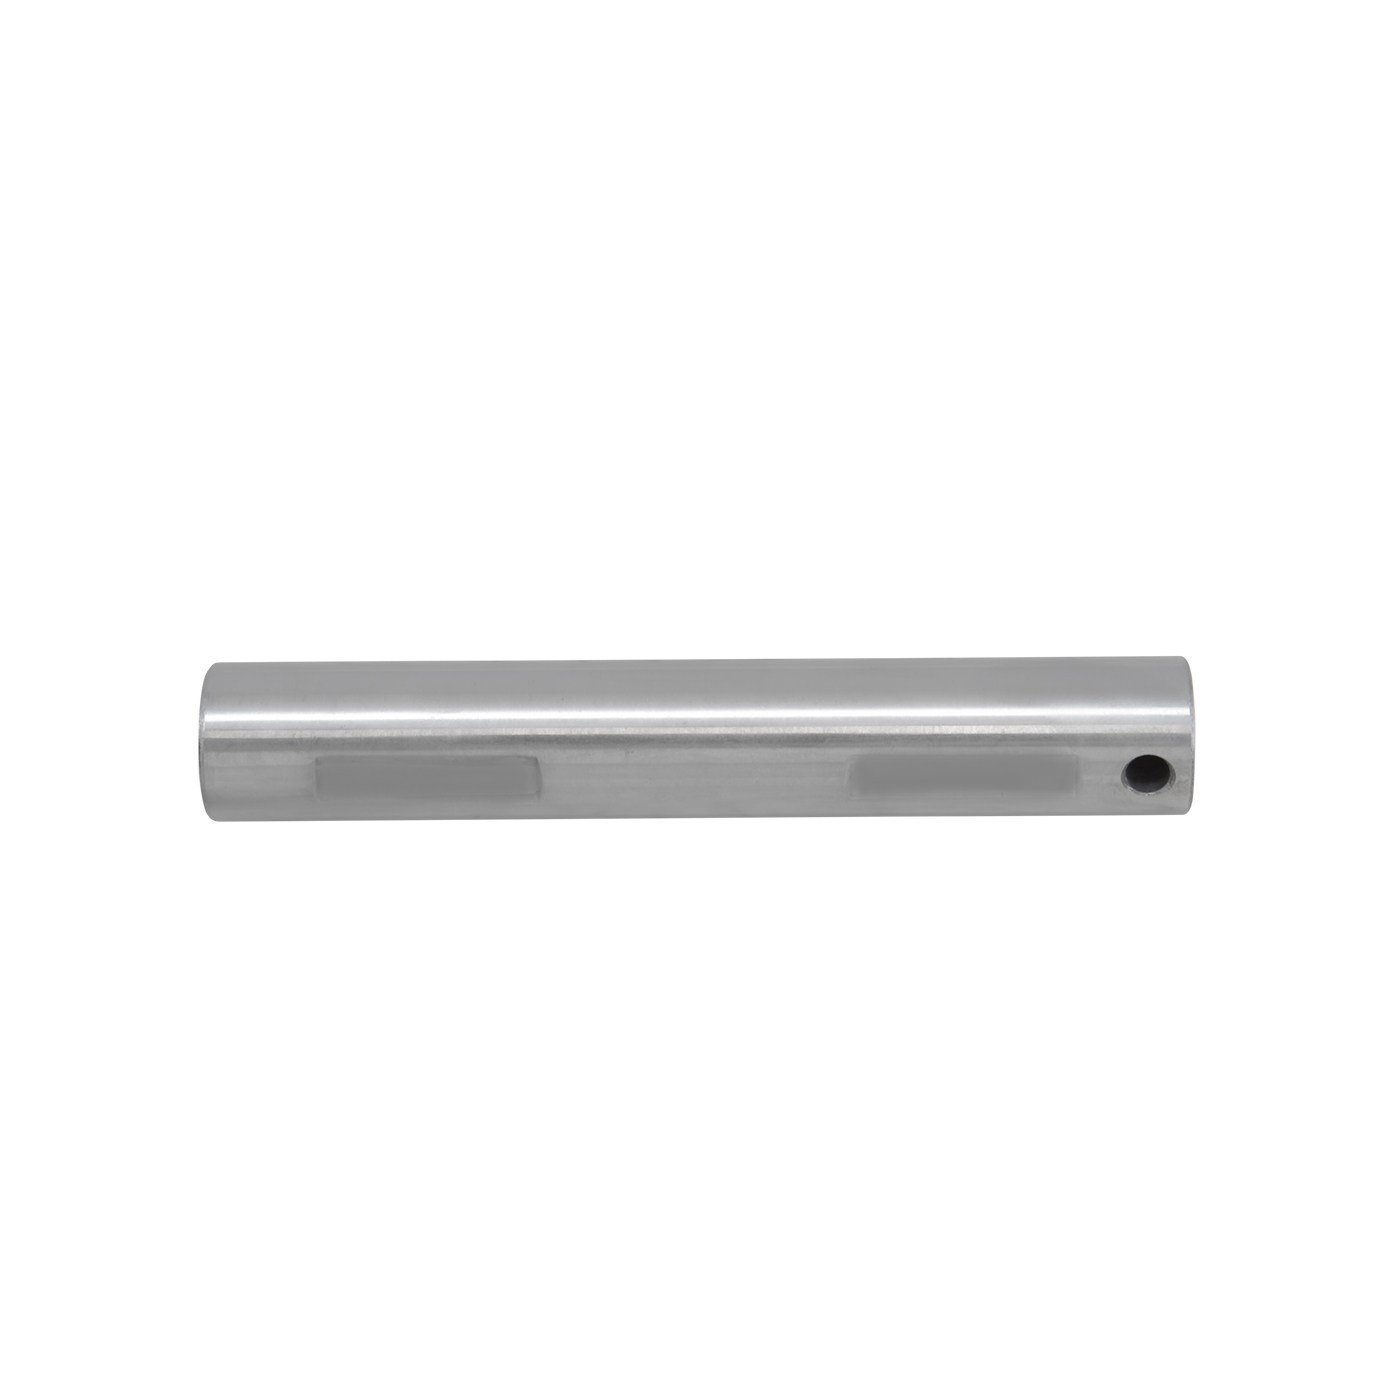 YSPXP-060 - Replacement cross pin shaft for Spicer 50, standard open